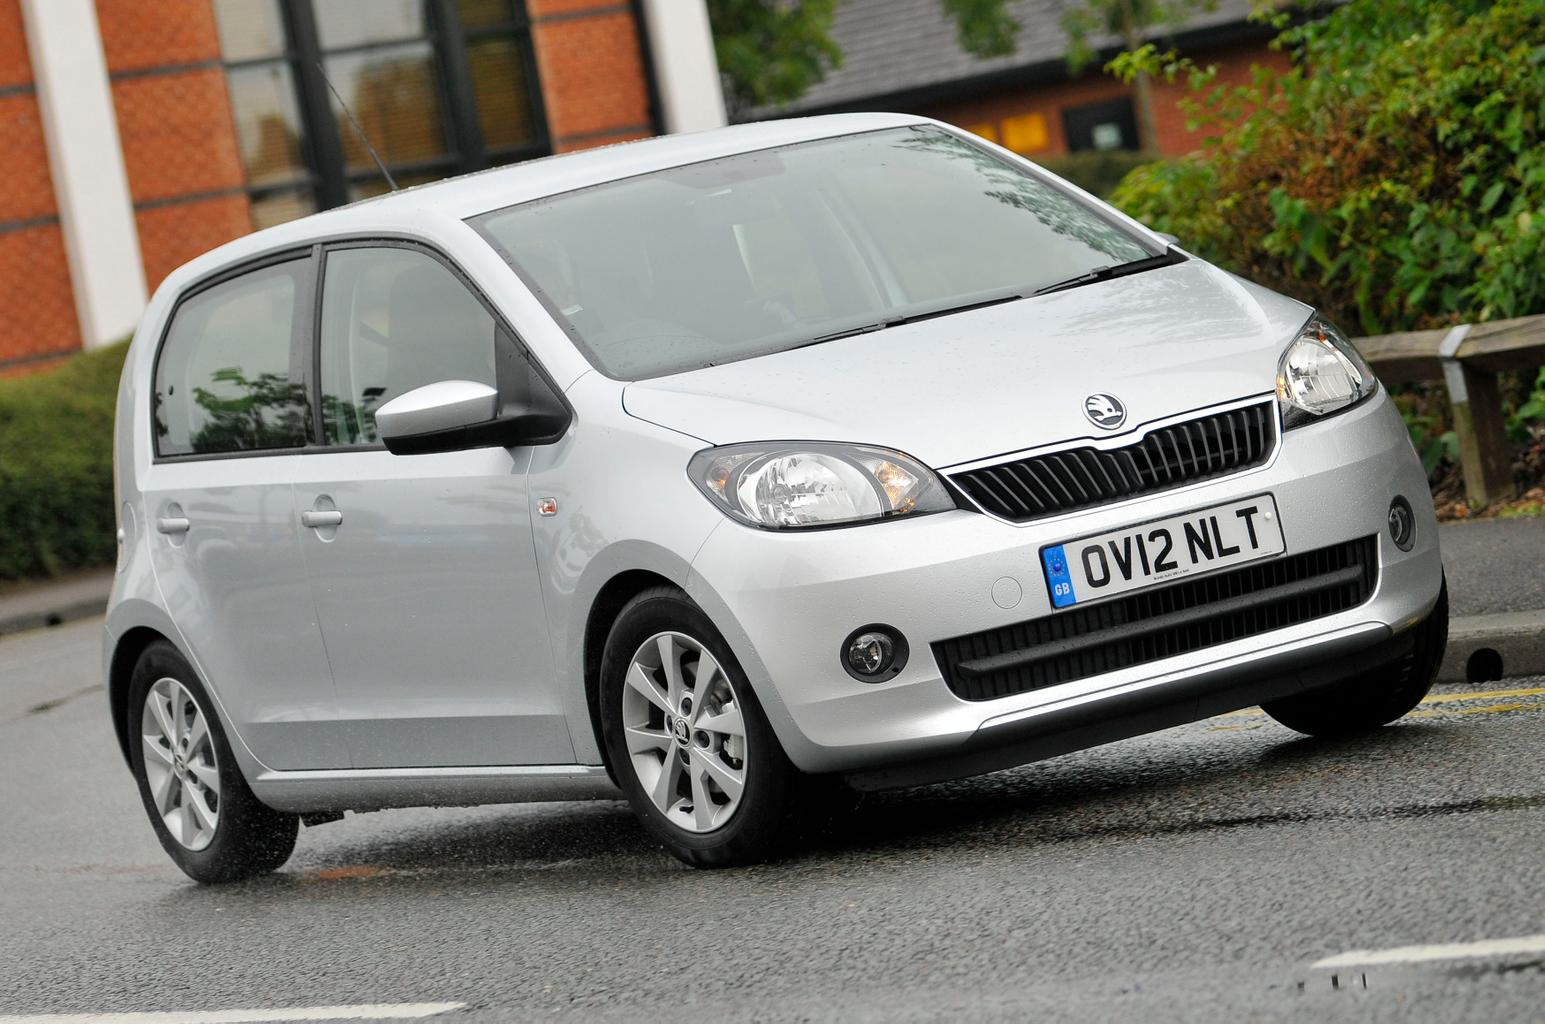 Used test – clever city cars: Fiat Panda vs Skoda Citigo